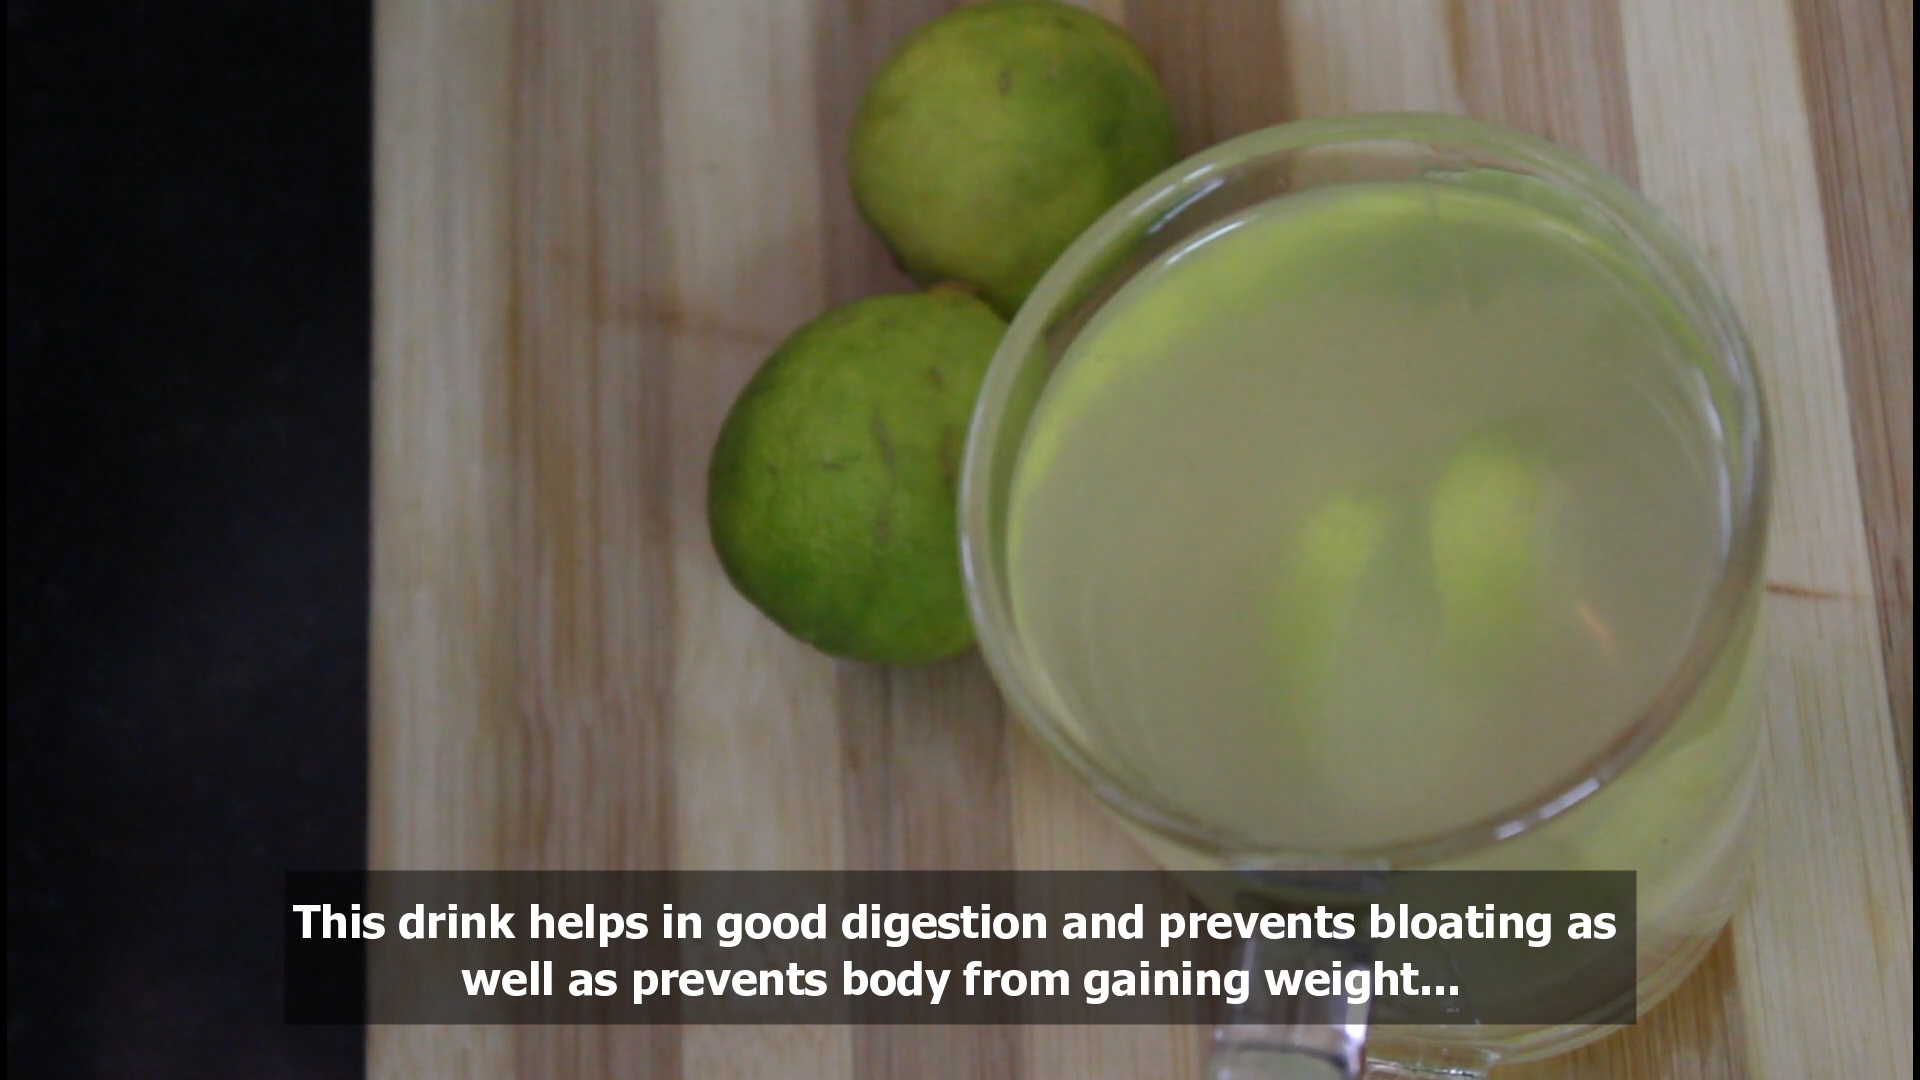 showing the glass with a text to drink it to prevent bloating and to aid digestion